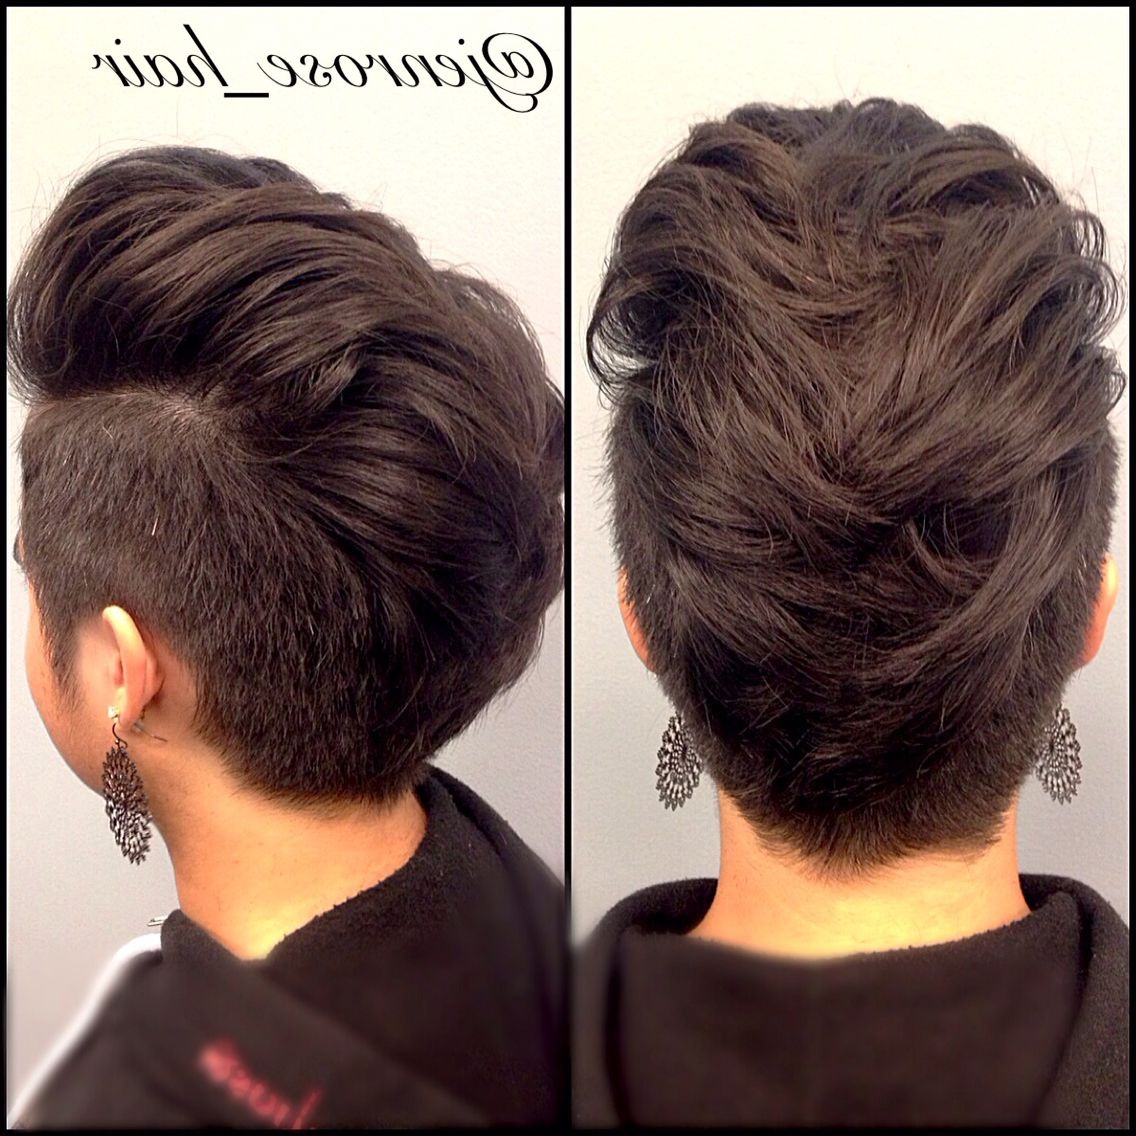 Women's Faux Hawk With Shaved Sides. Shorts Women's Hair Cut (View 15 of 20)